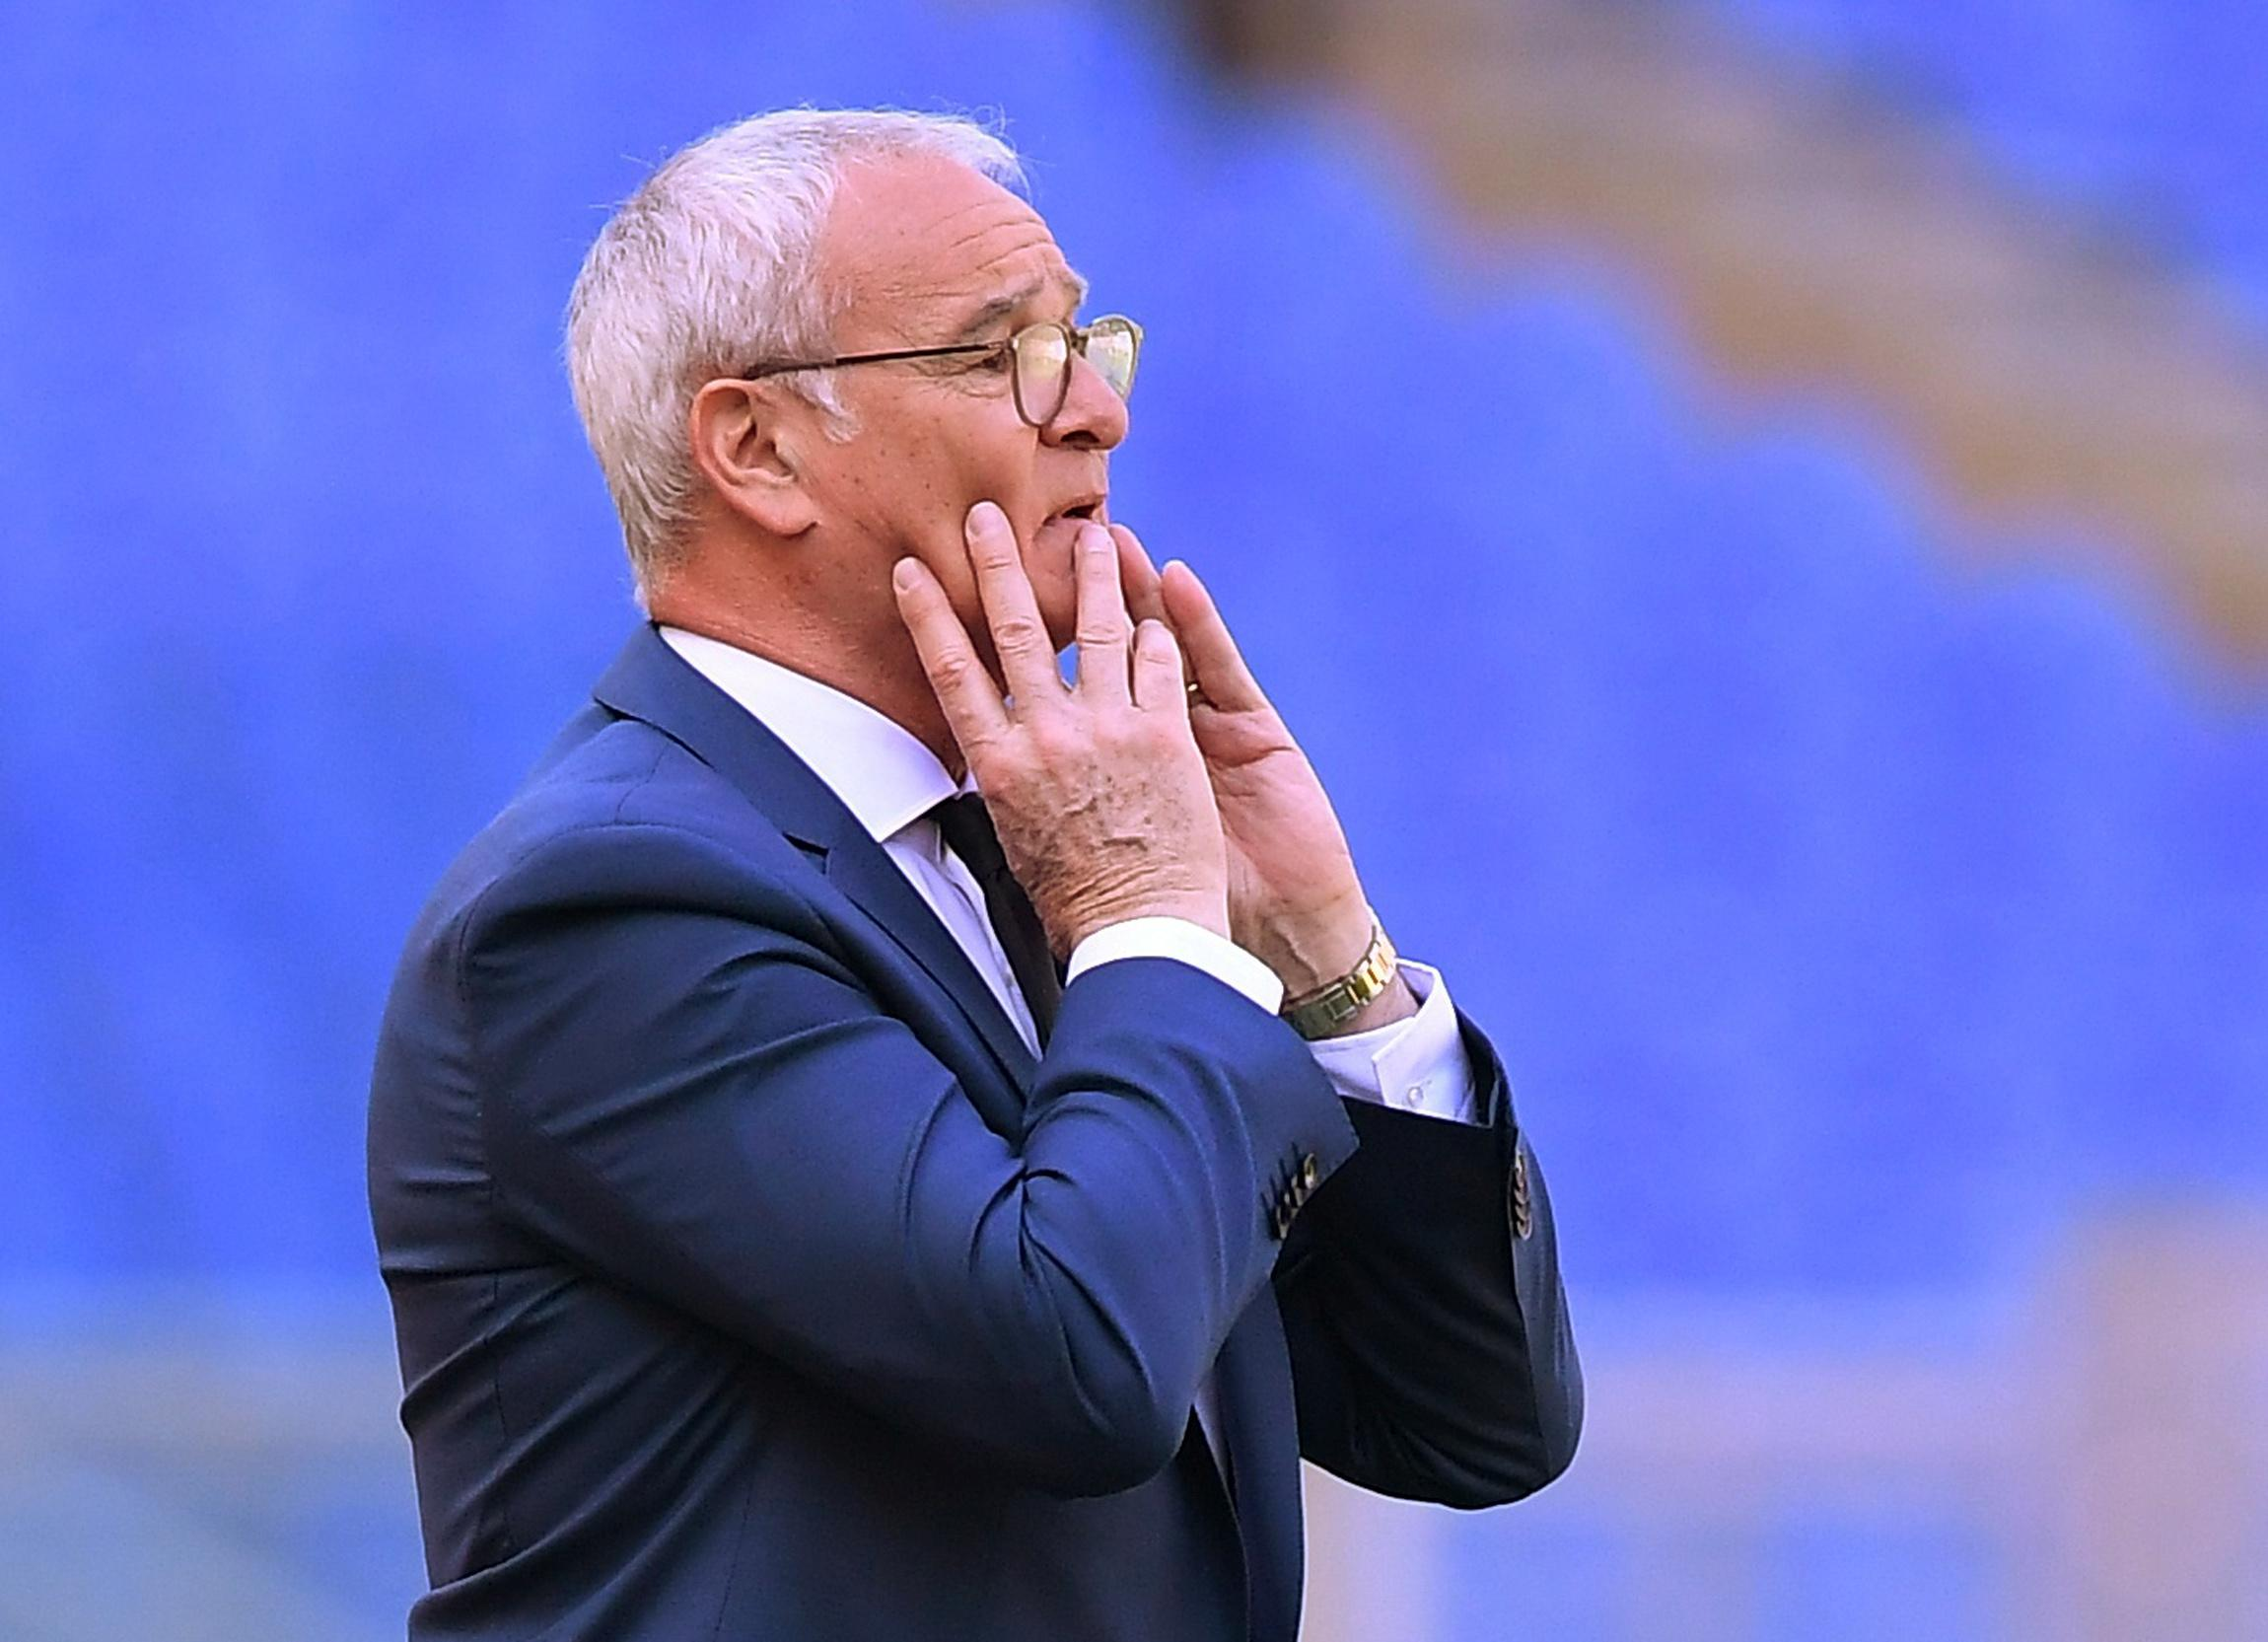 Sampdoria appoint Ranieri as new coach on two-year deal